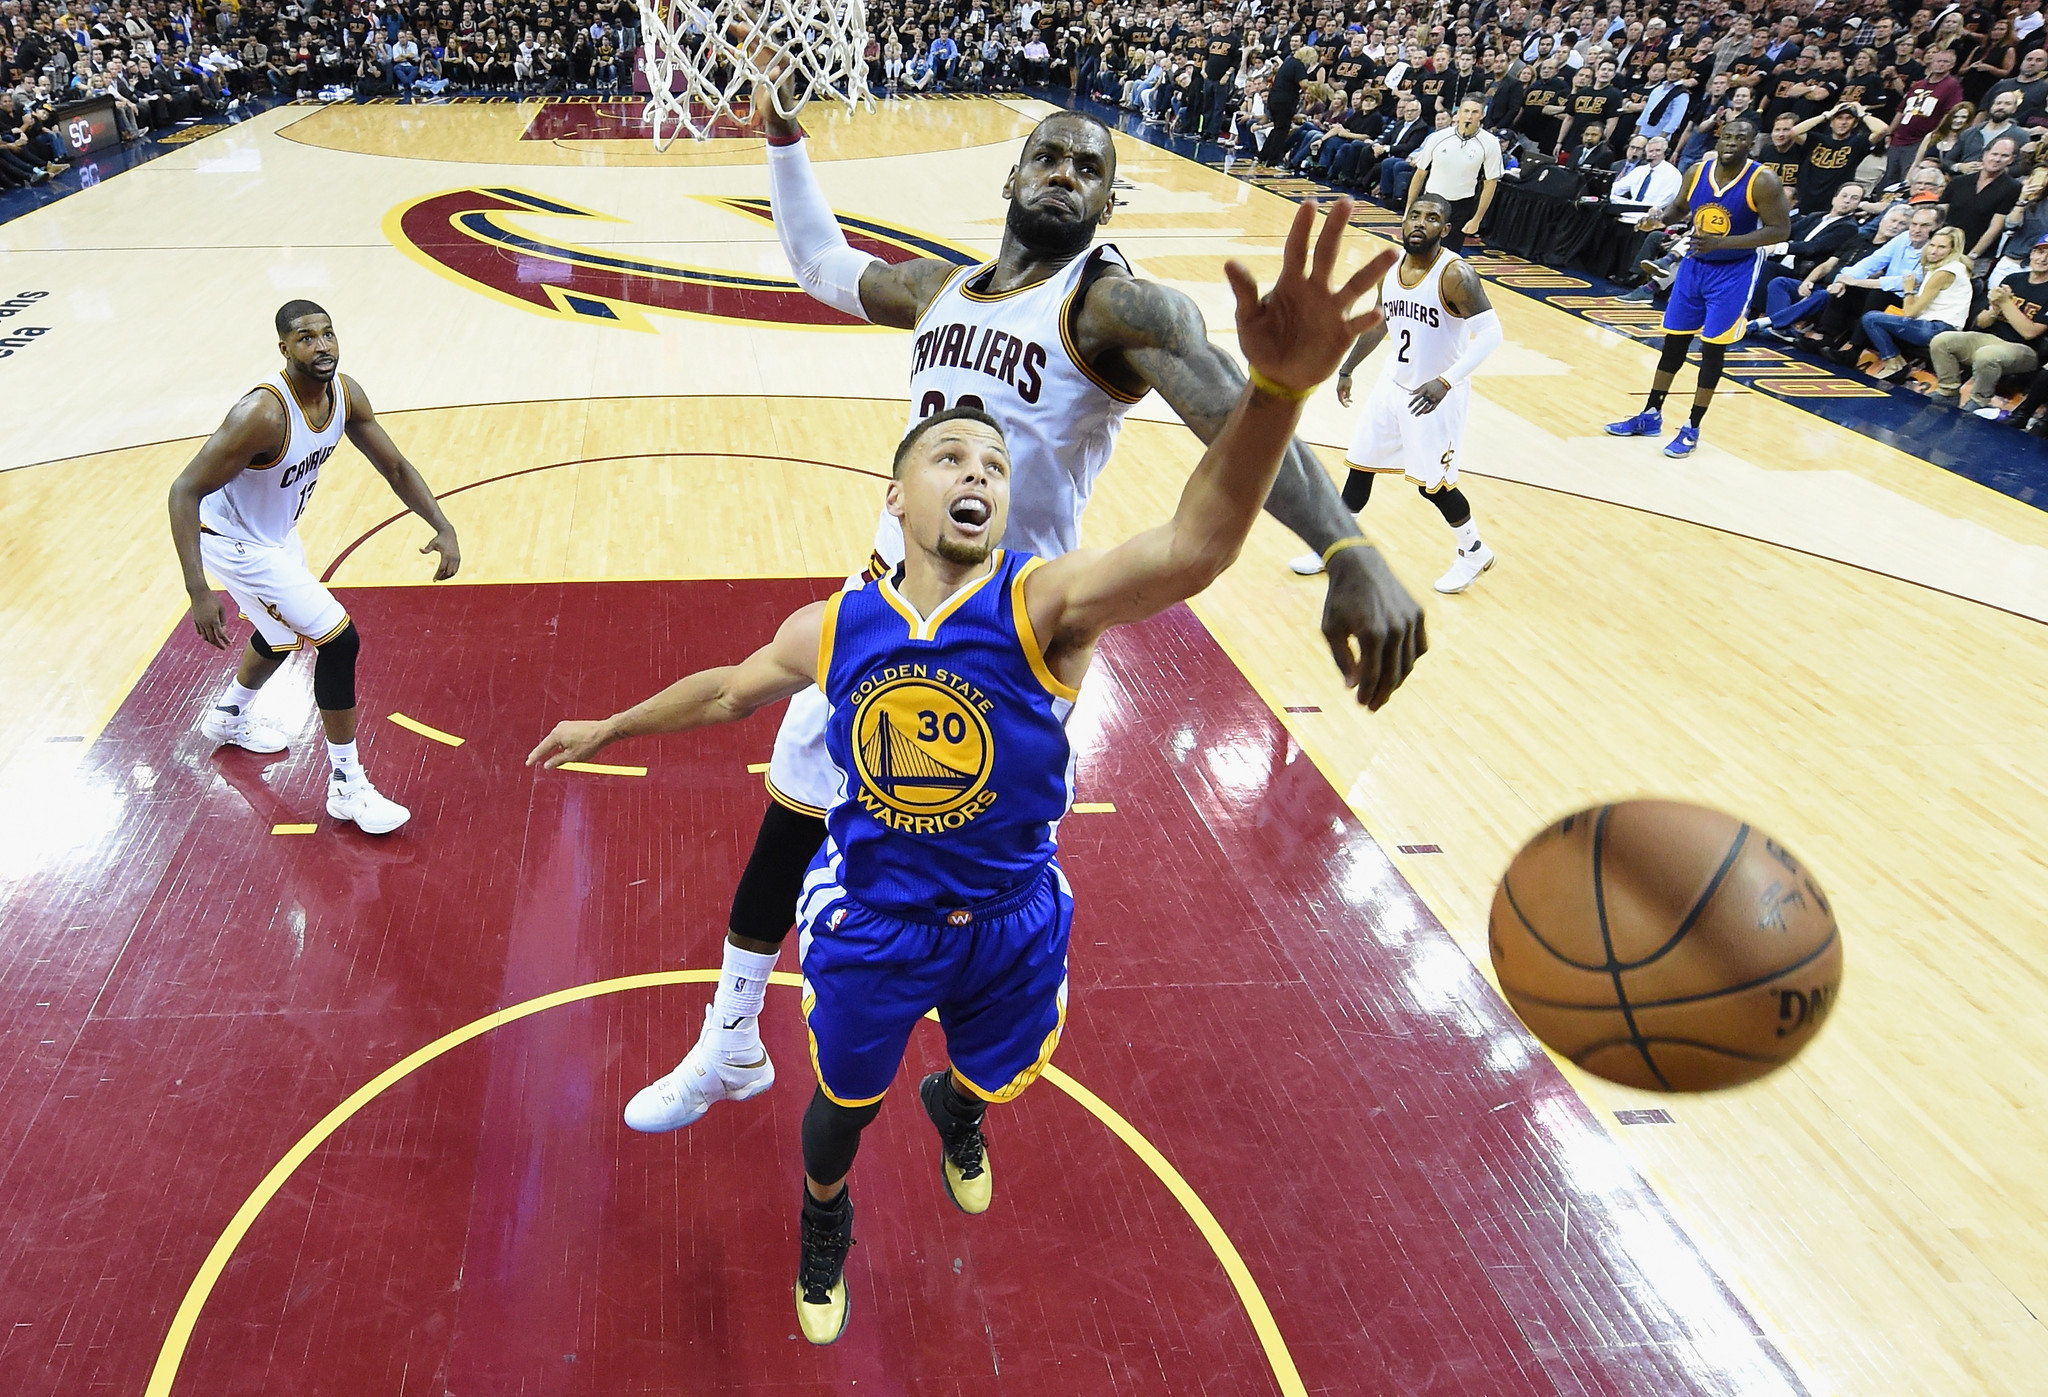 Emotions Running High For Warriors, Cavaliers And Their Fans